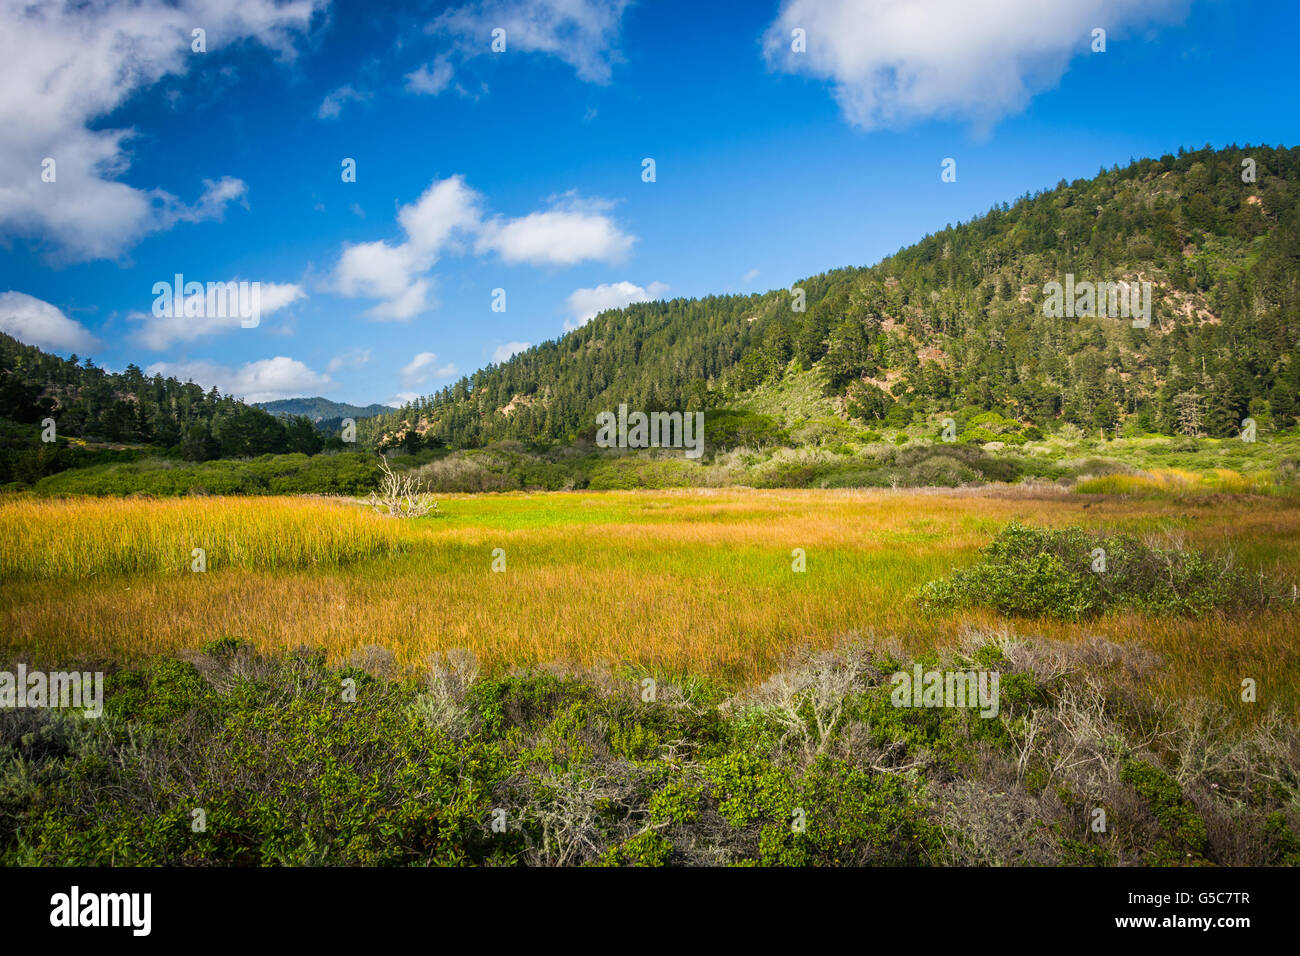 View of hills at Rancho Del Oso -  Big Basin Redwoods State Park, in California. Stock Photo